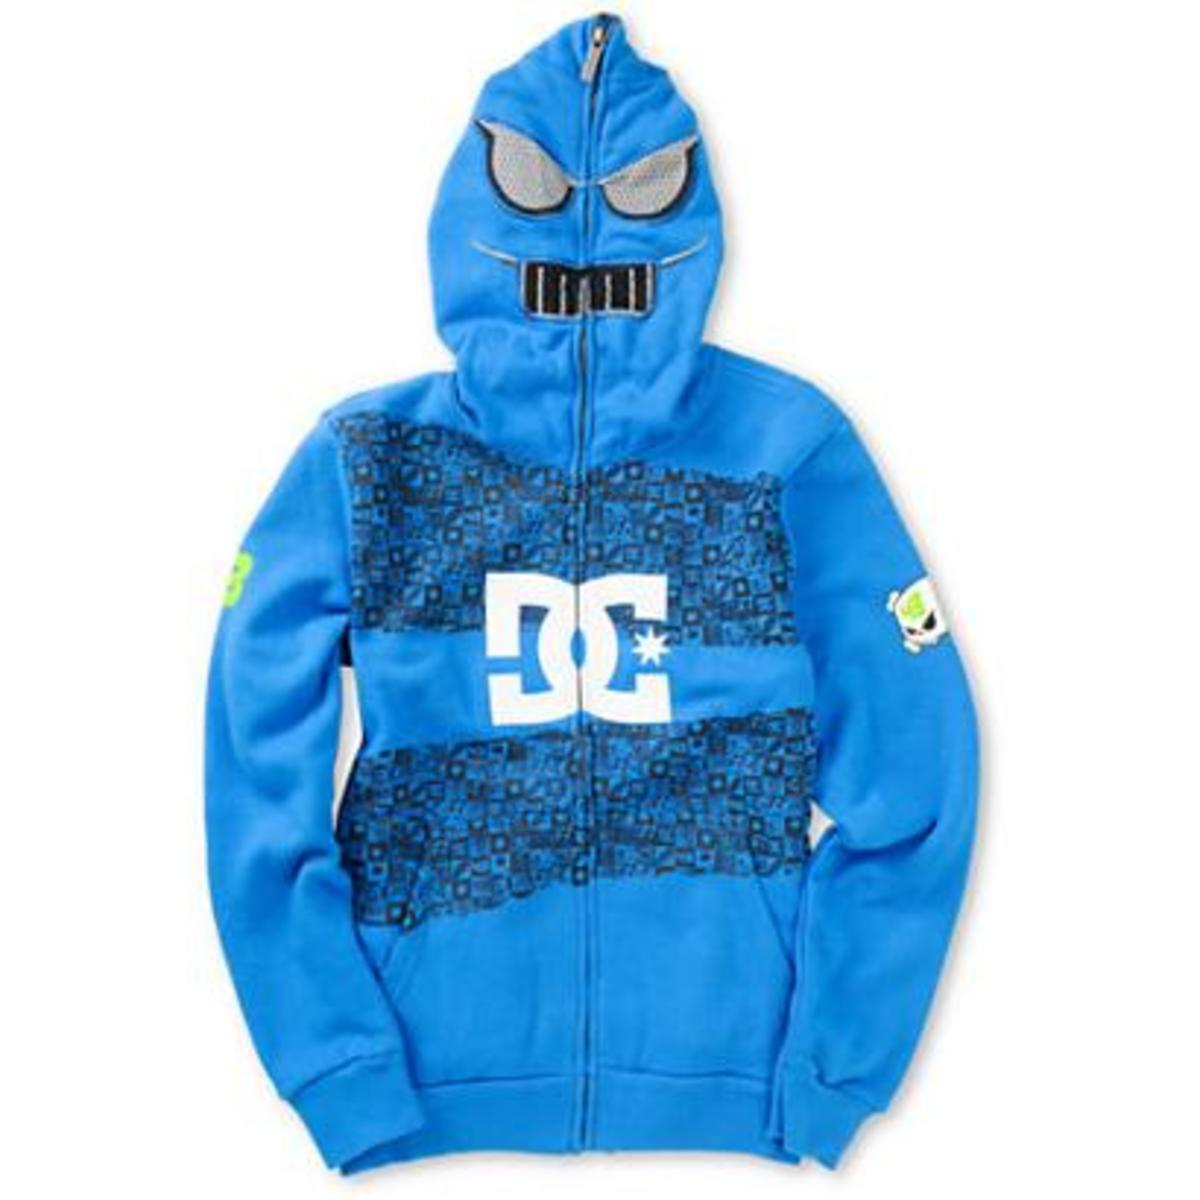 Awesome Zumiez hoodie for about the $50 range